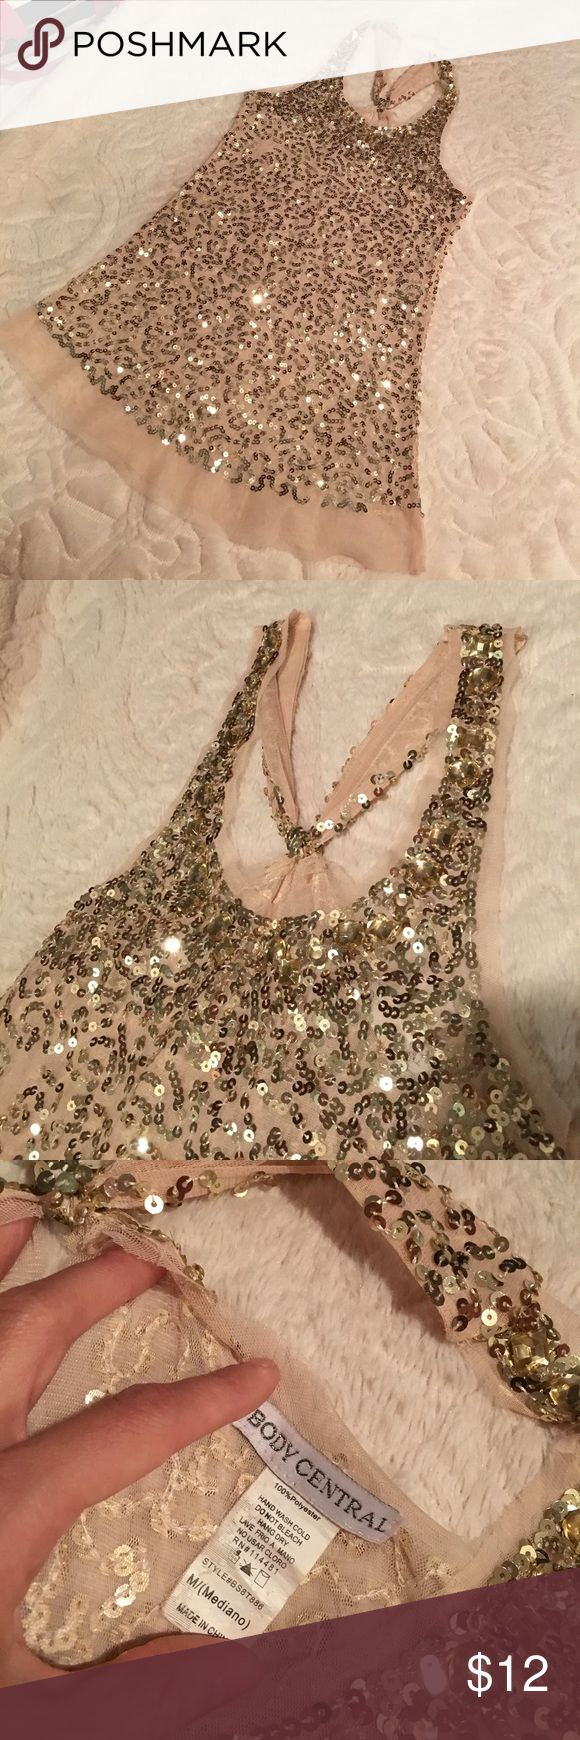 Body Central size medium!Super sexy! Sparkly tank! Body Central size medium!Super sexy! Sparkly tank! Only worn once or twice! So cute and sexy! Super sparkly 😍 sheer/mesh, gold sequins, and decorative back. Body Central Tops Blouses